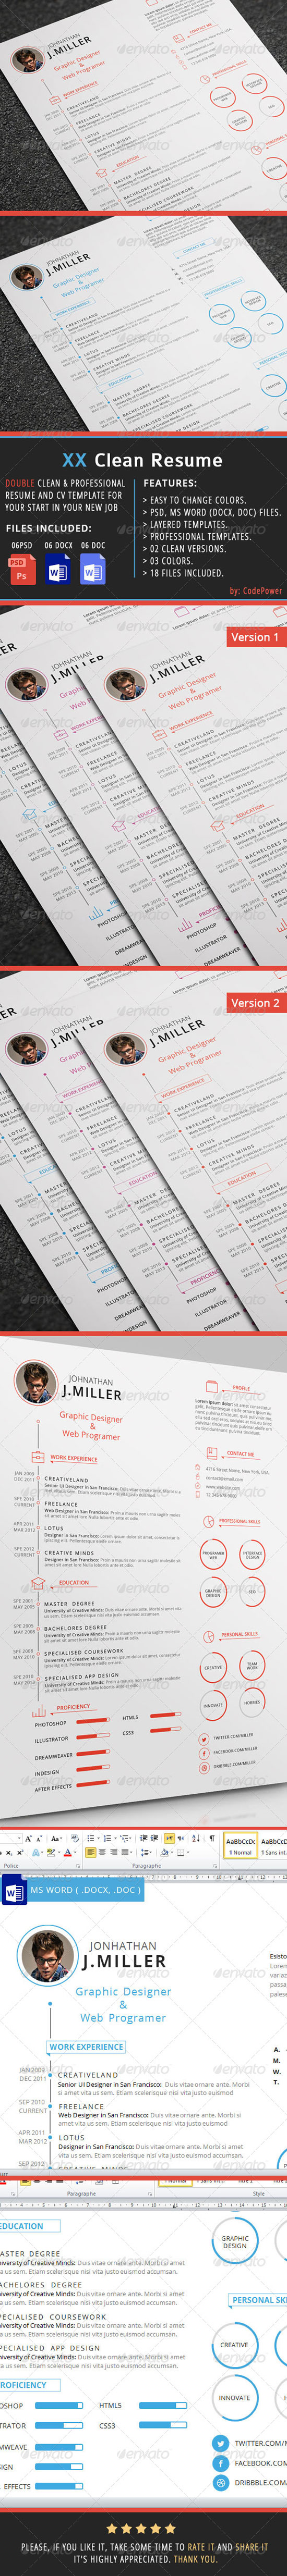 Simple  Professional Resume Templates To Get A Dream Job